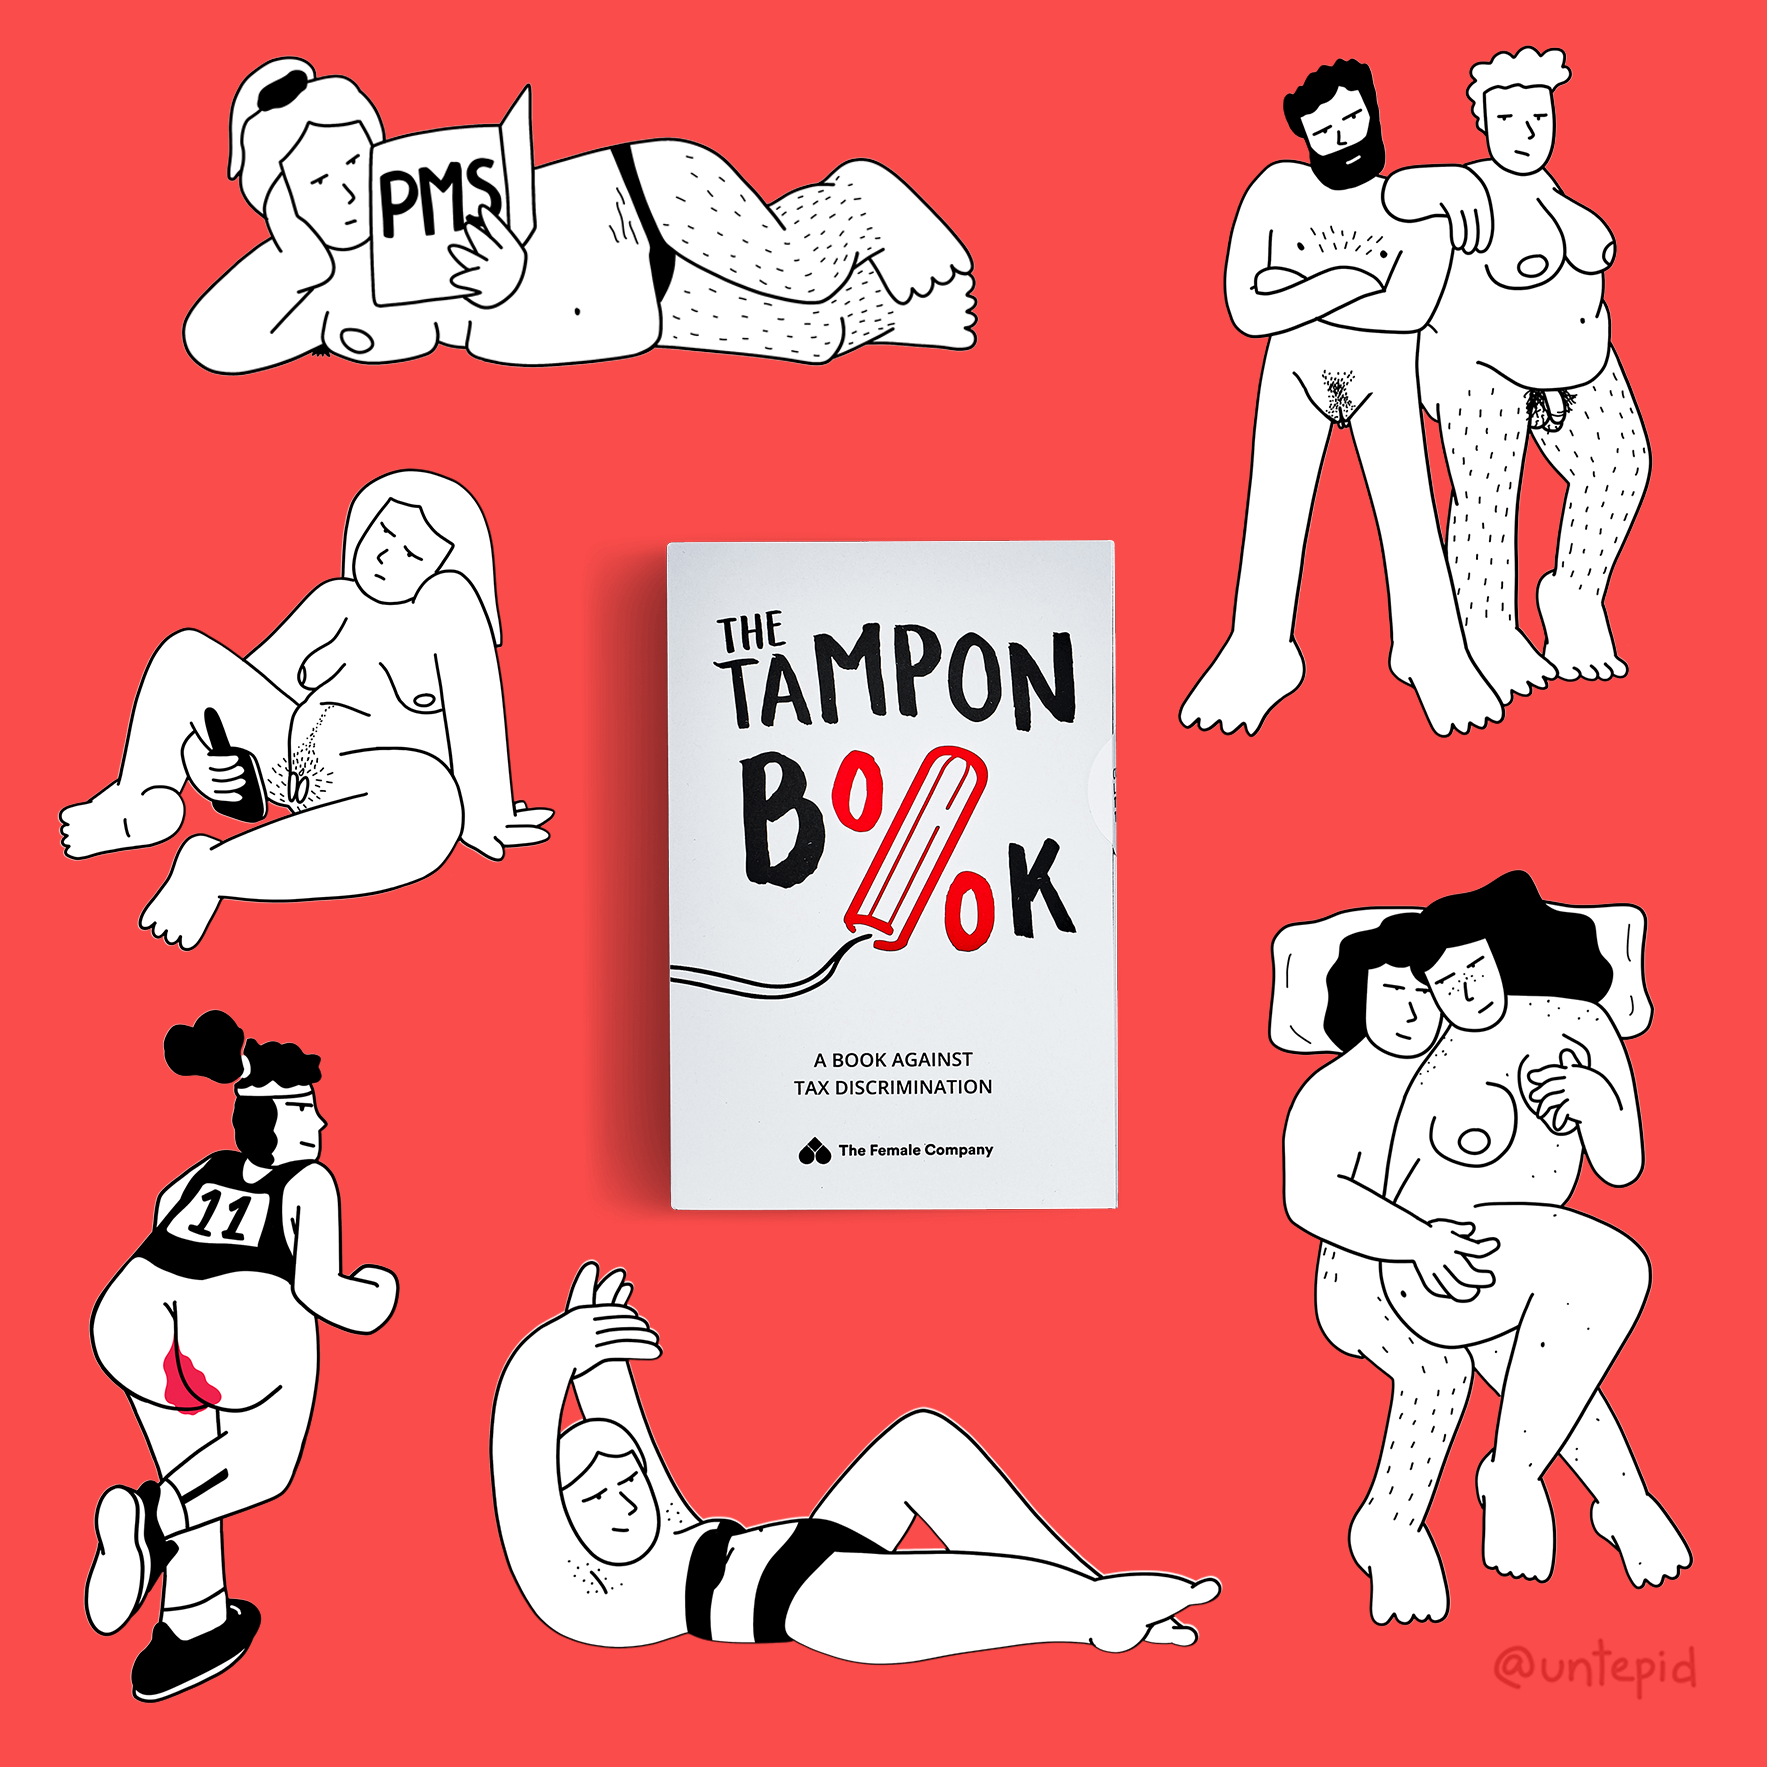 Single line illustrations of powerful, bold and uncompromising women characters by illustrator Ana Curbelo for The Tampon Book.